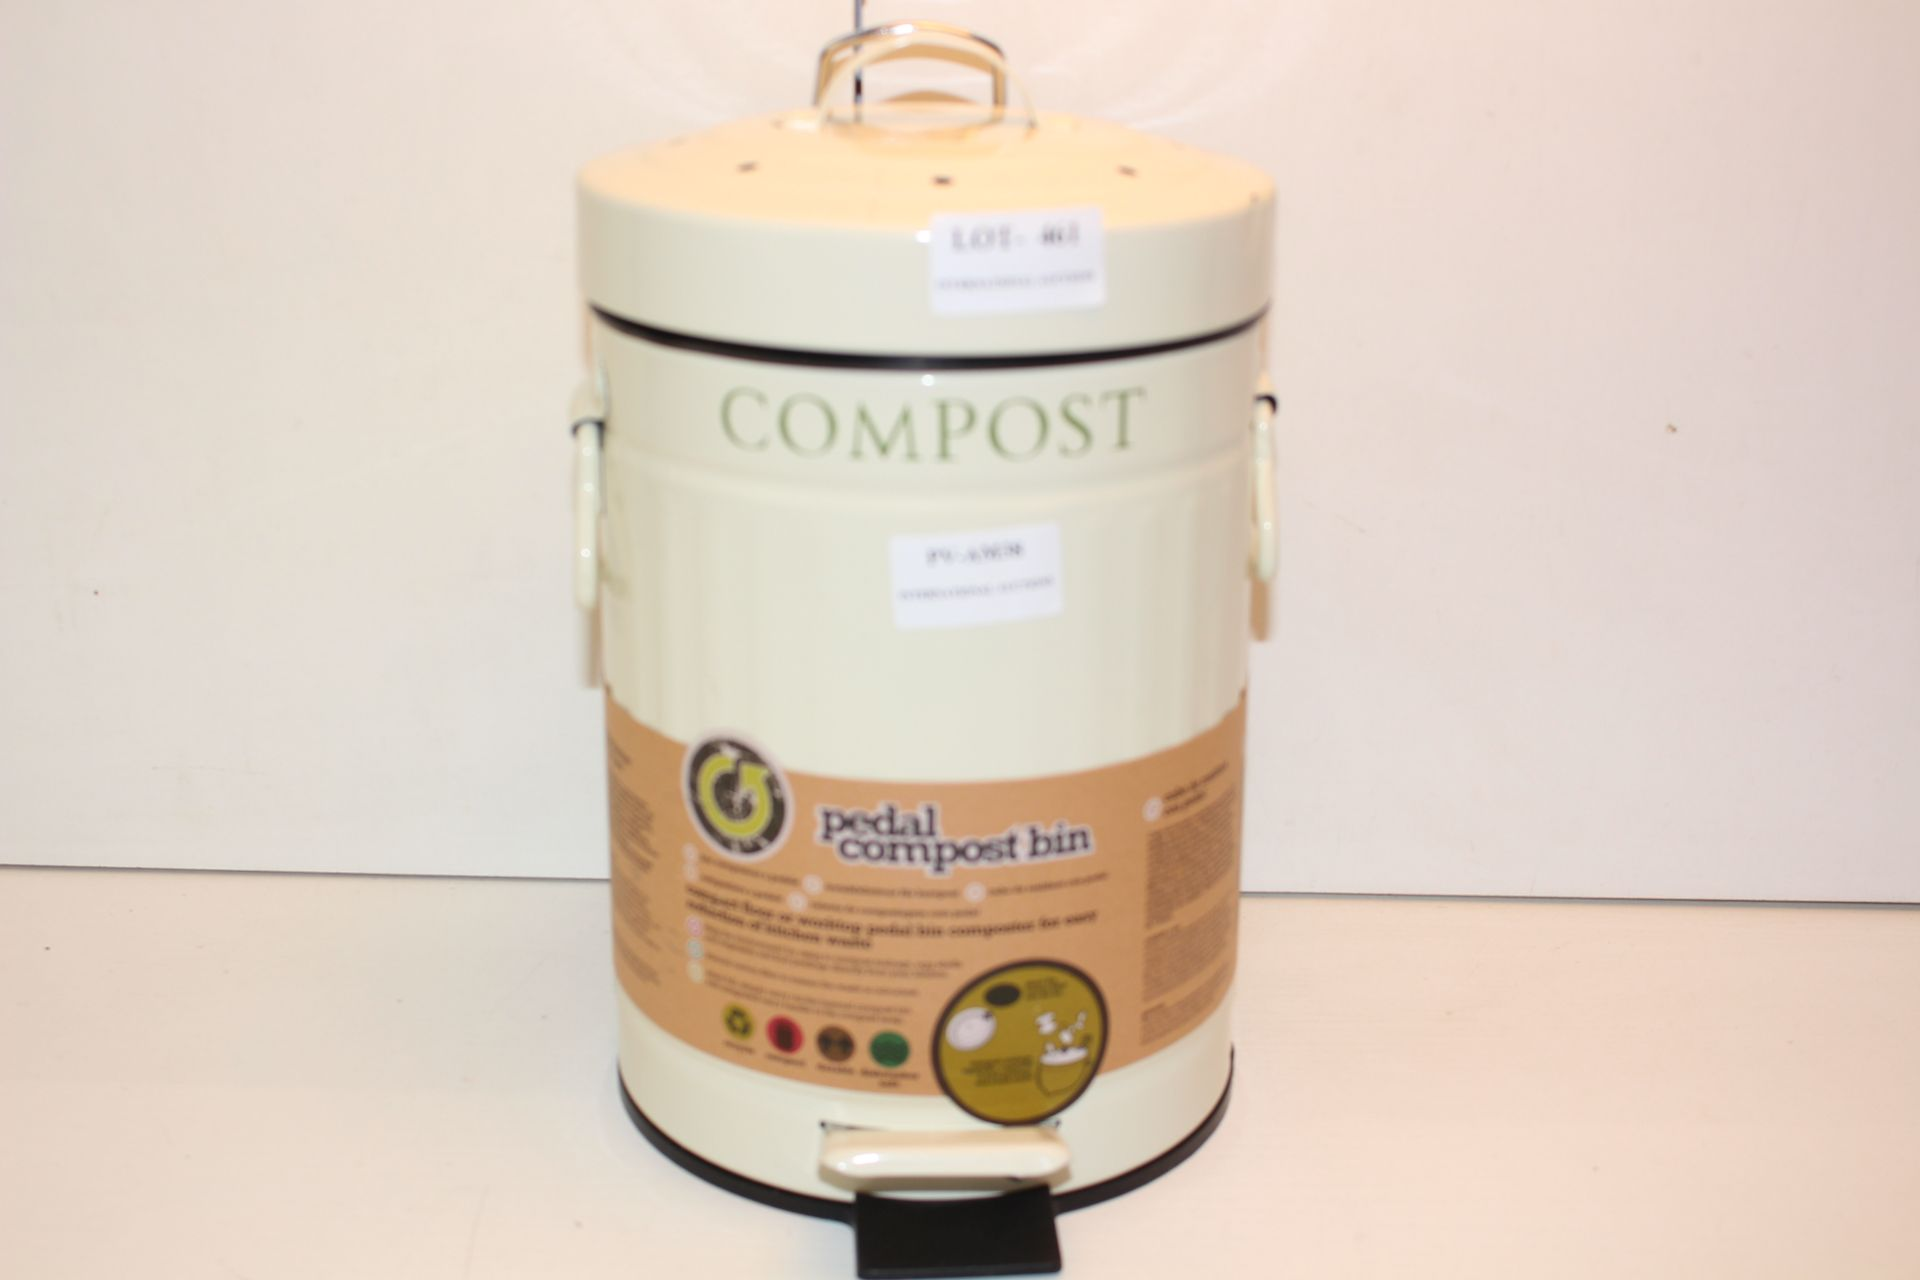 UNBOXED METALL COMPOST PEDAL BINCondition ReportAppraisal Available on Request- All Items are